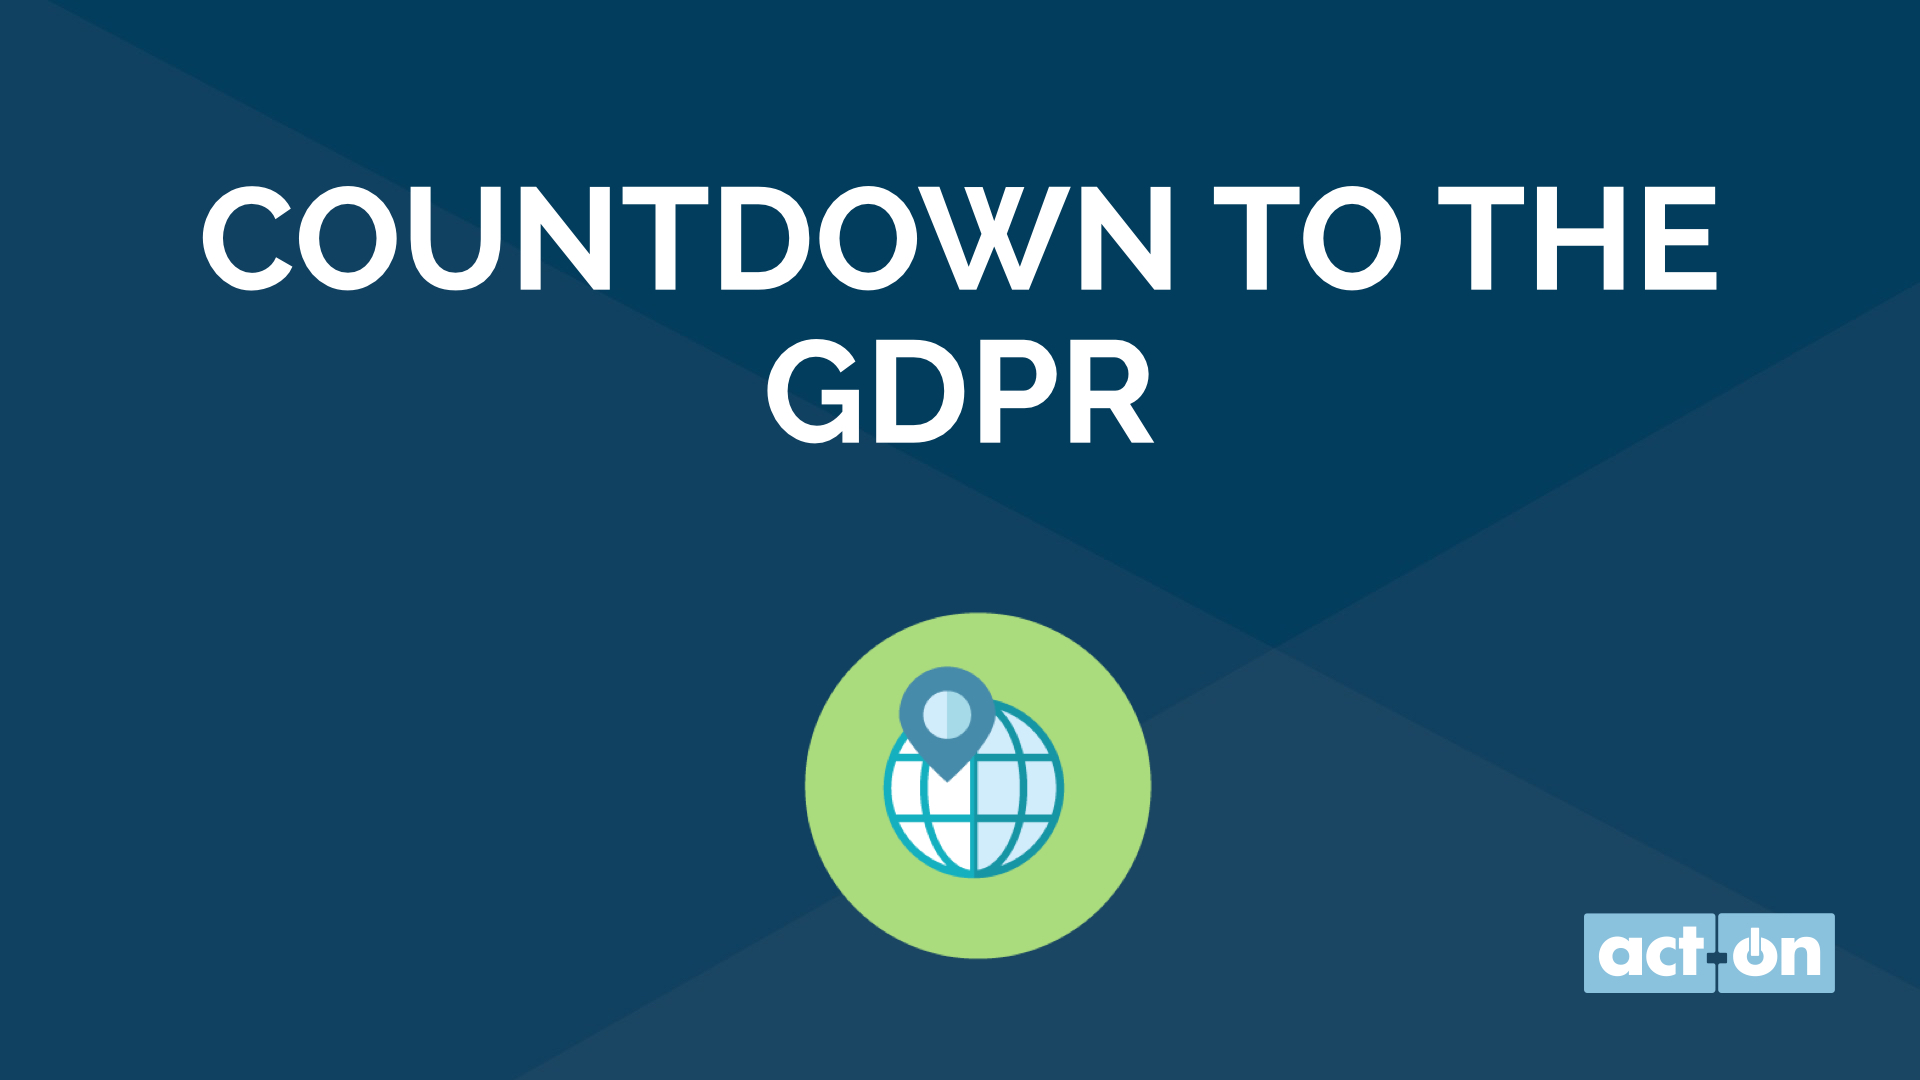 Countdown to the GDPR